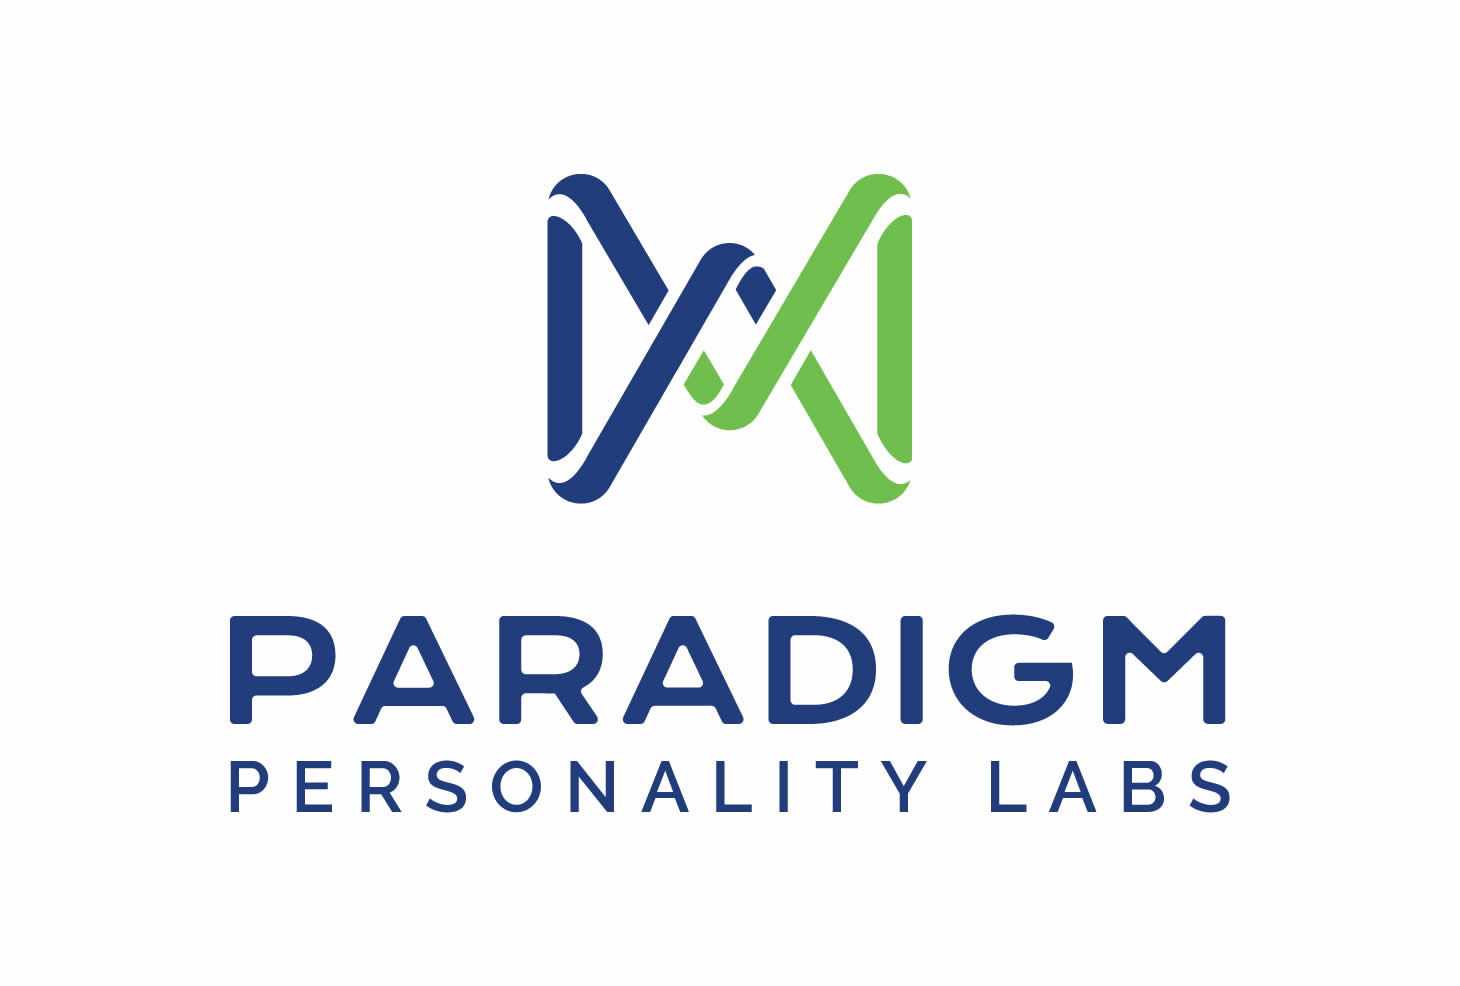 Paradigm Personality Labs